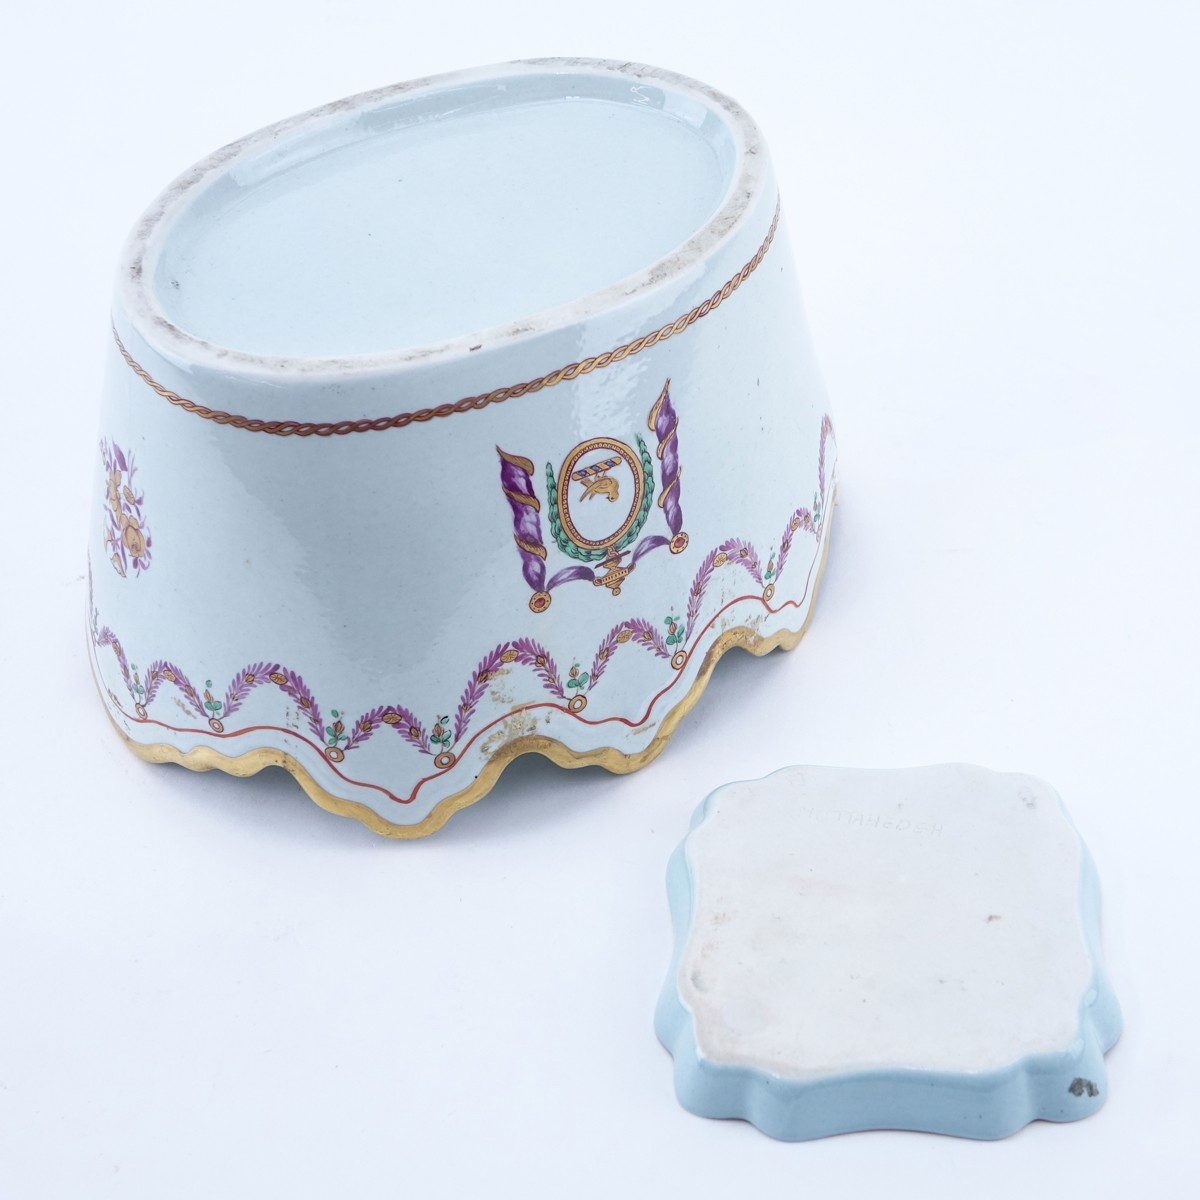 Two (2) Pieces Modern Chinese Export Style Porcelain Table Top Items. Includes an unsigned cachepot